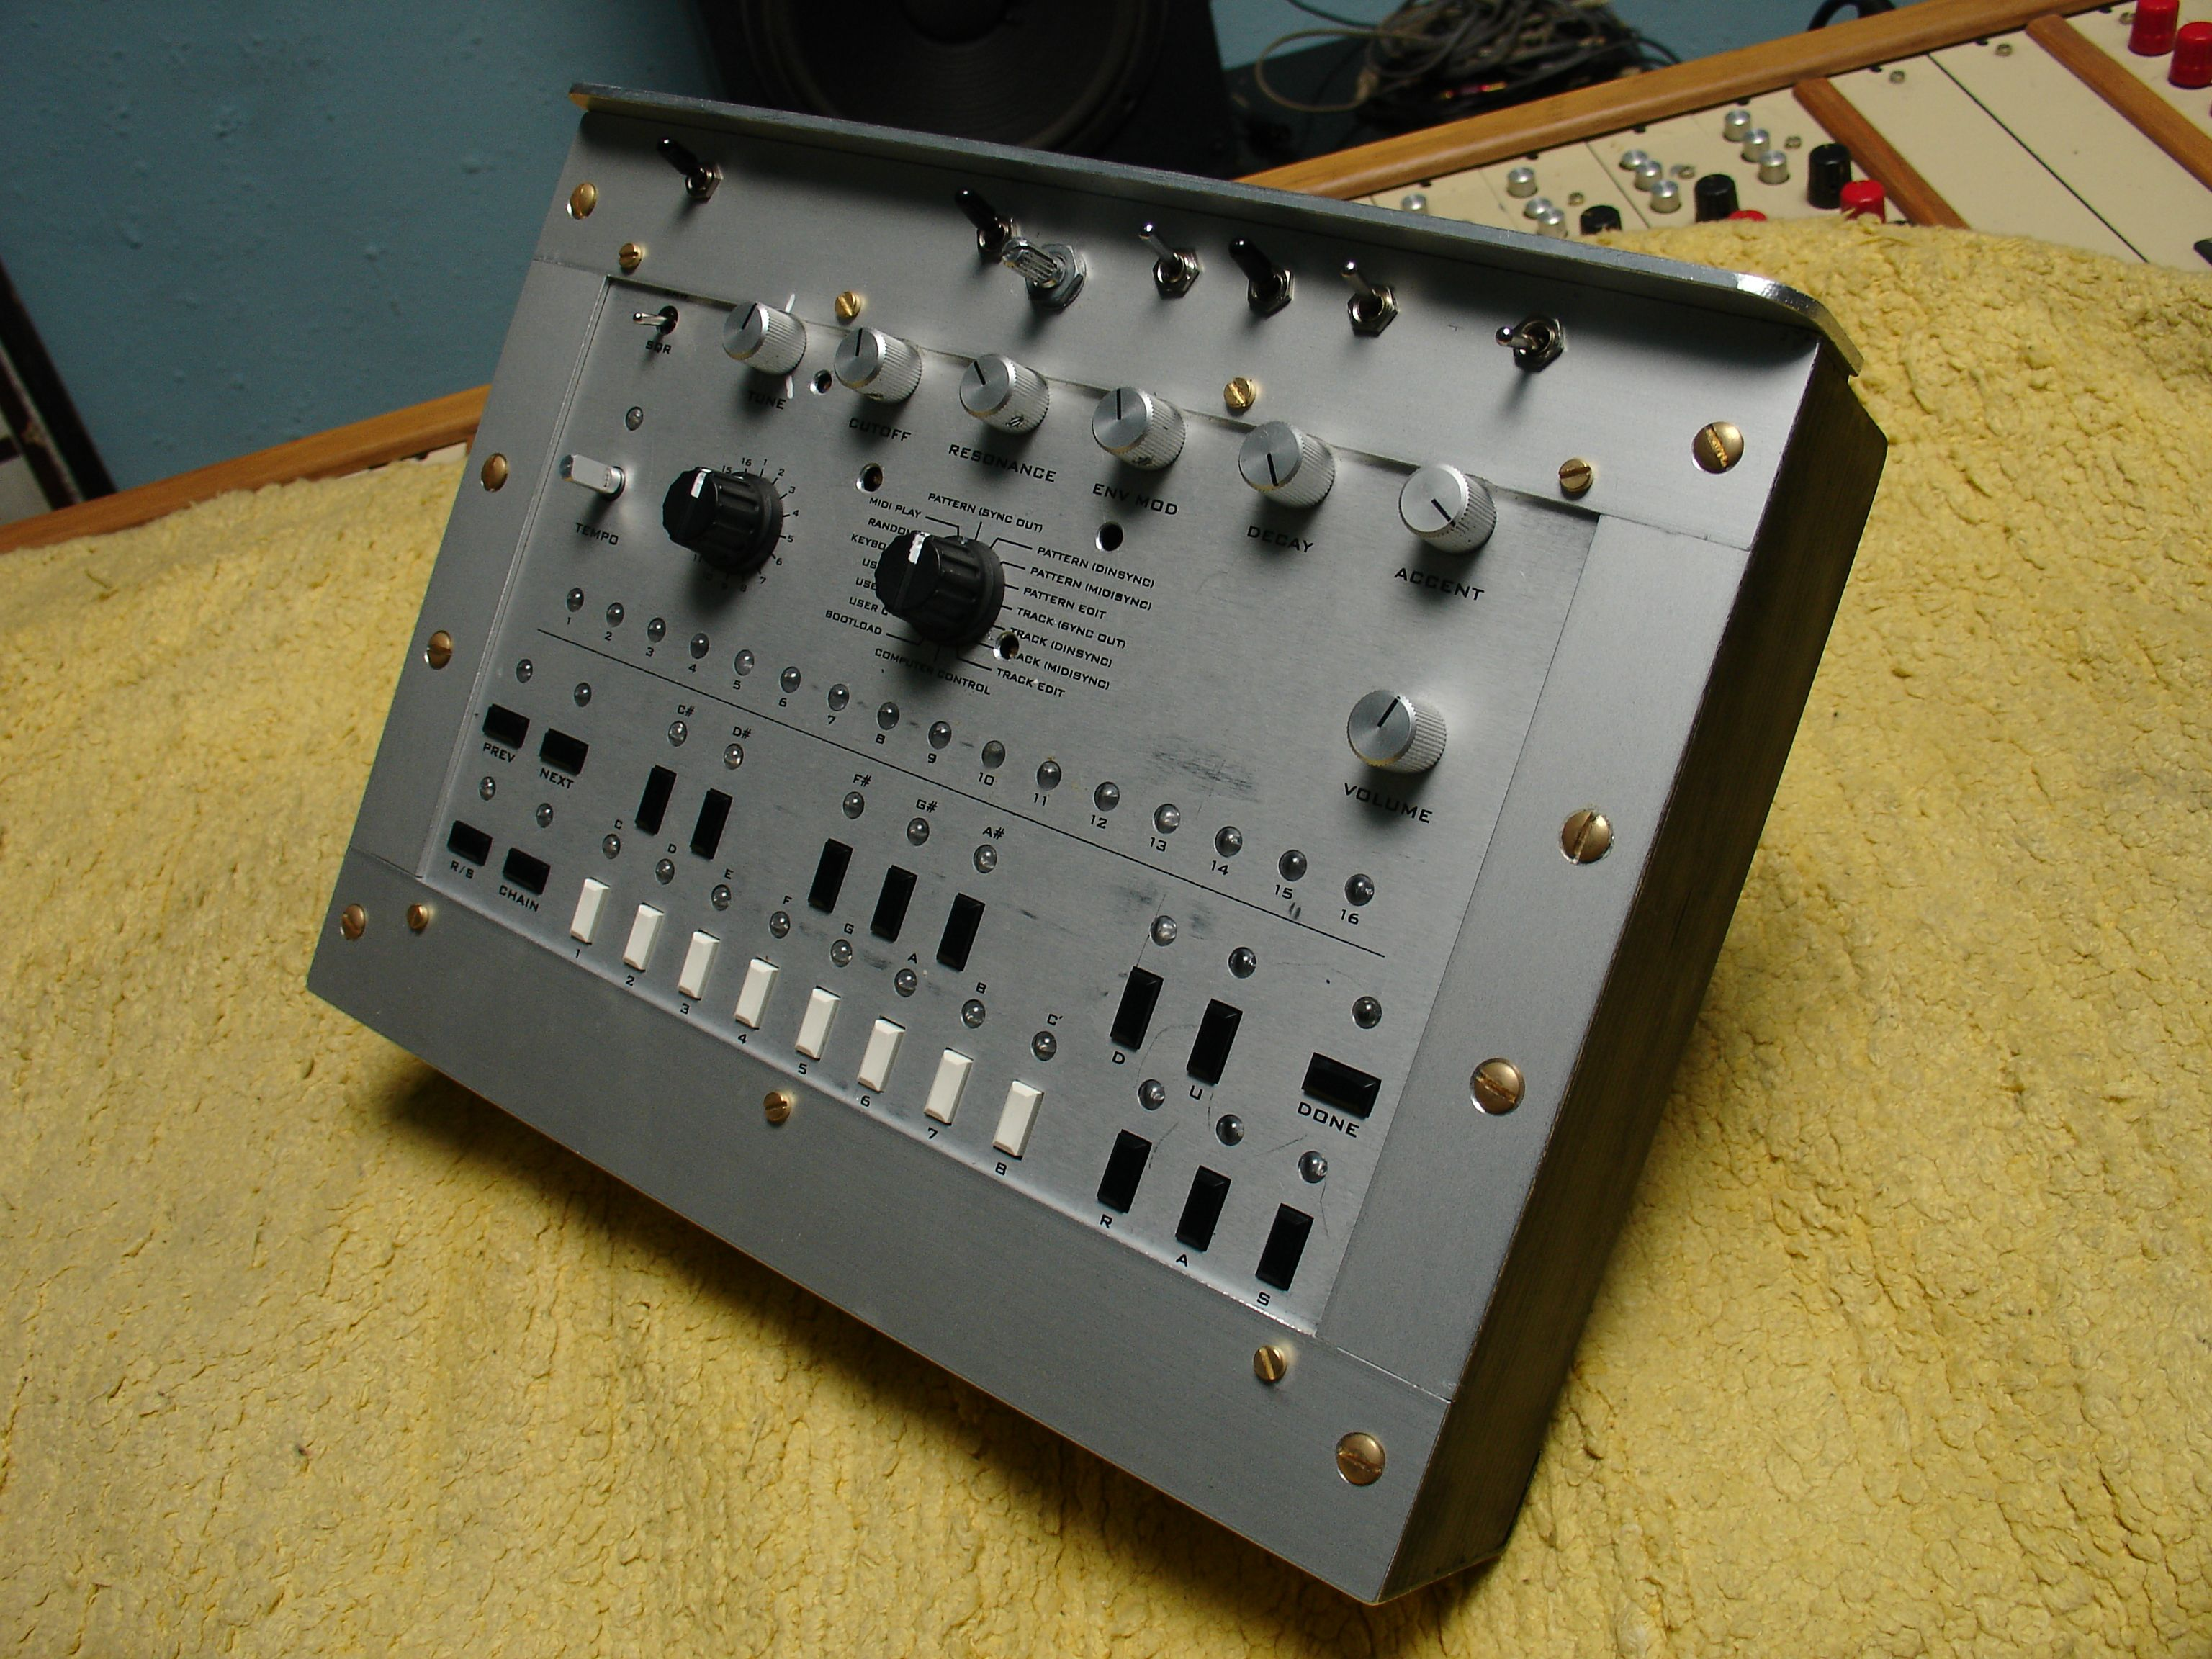 Best 303 Clone  Thoughts? - Page 2 - Gearslutz